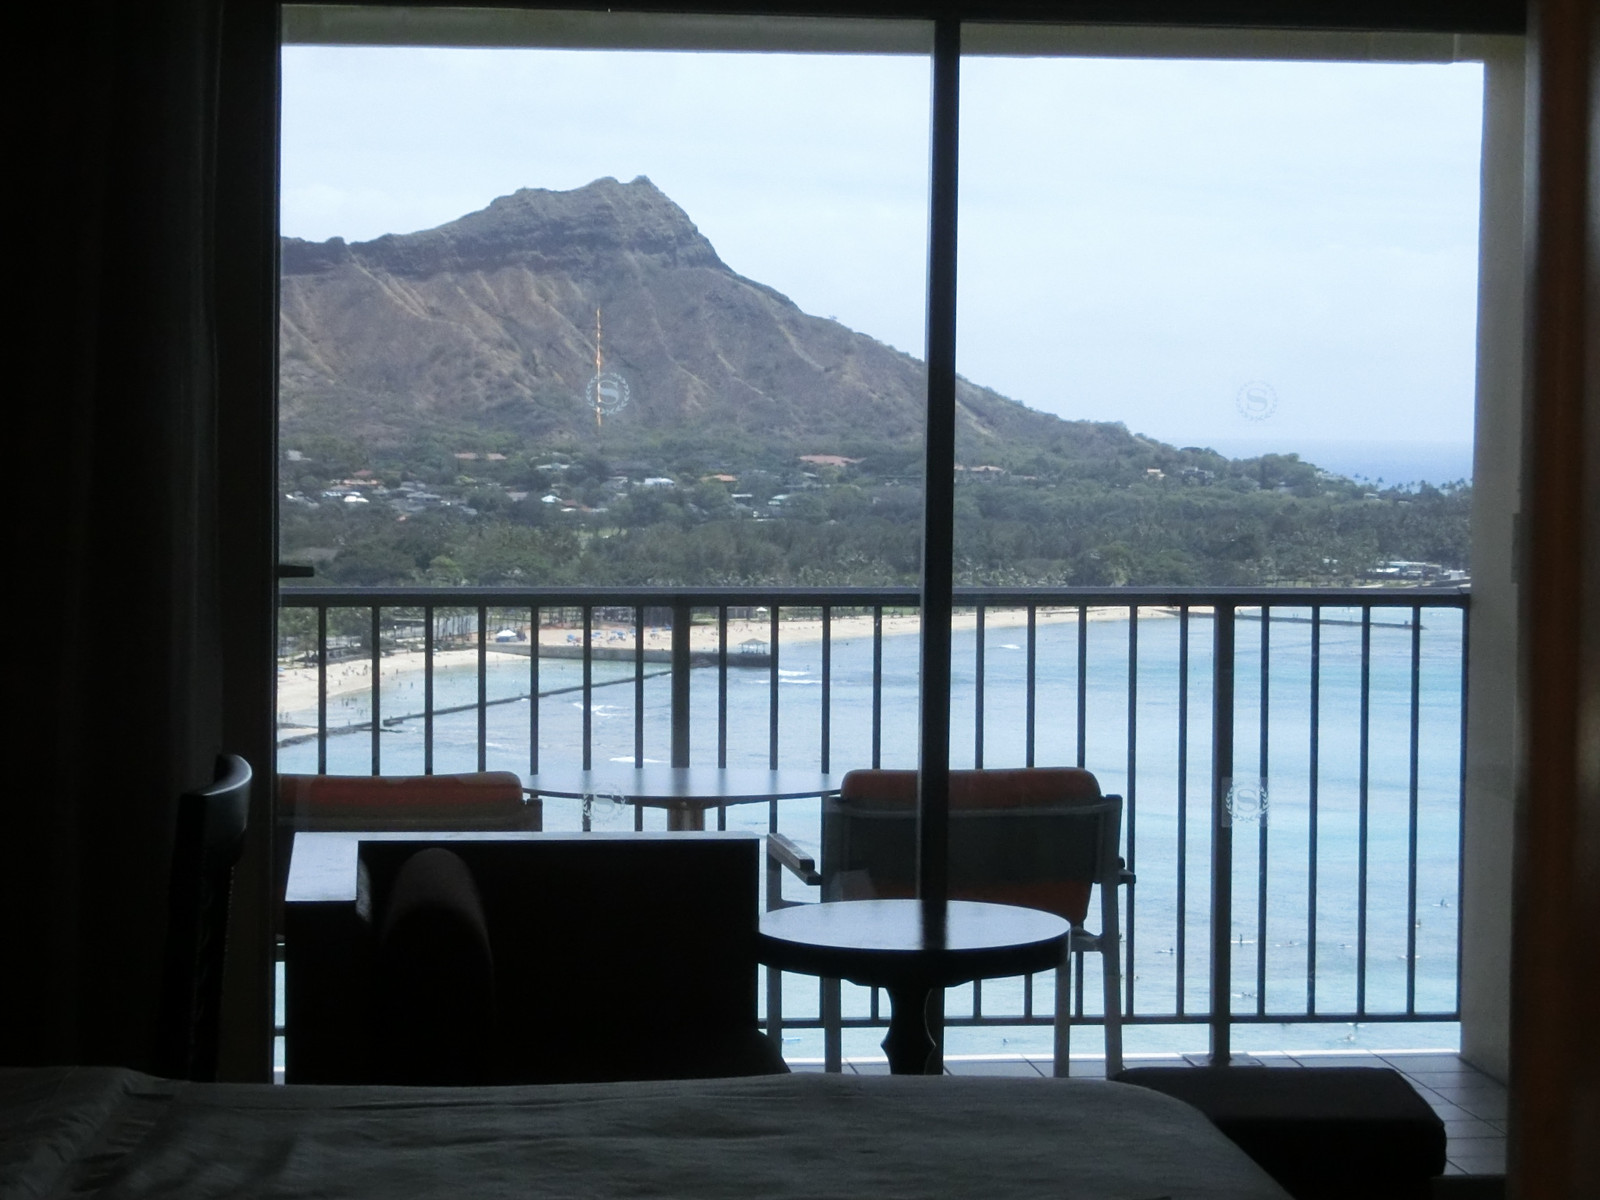 Diamond_head_viewed_from_bathroom_2